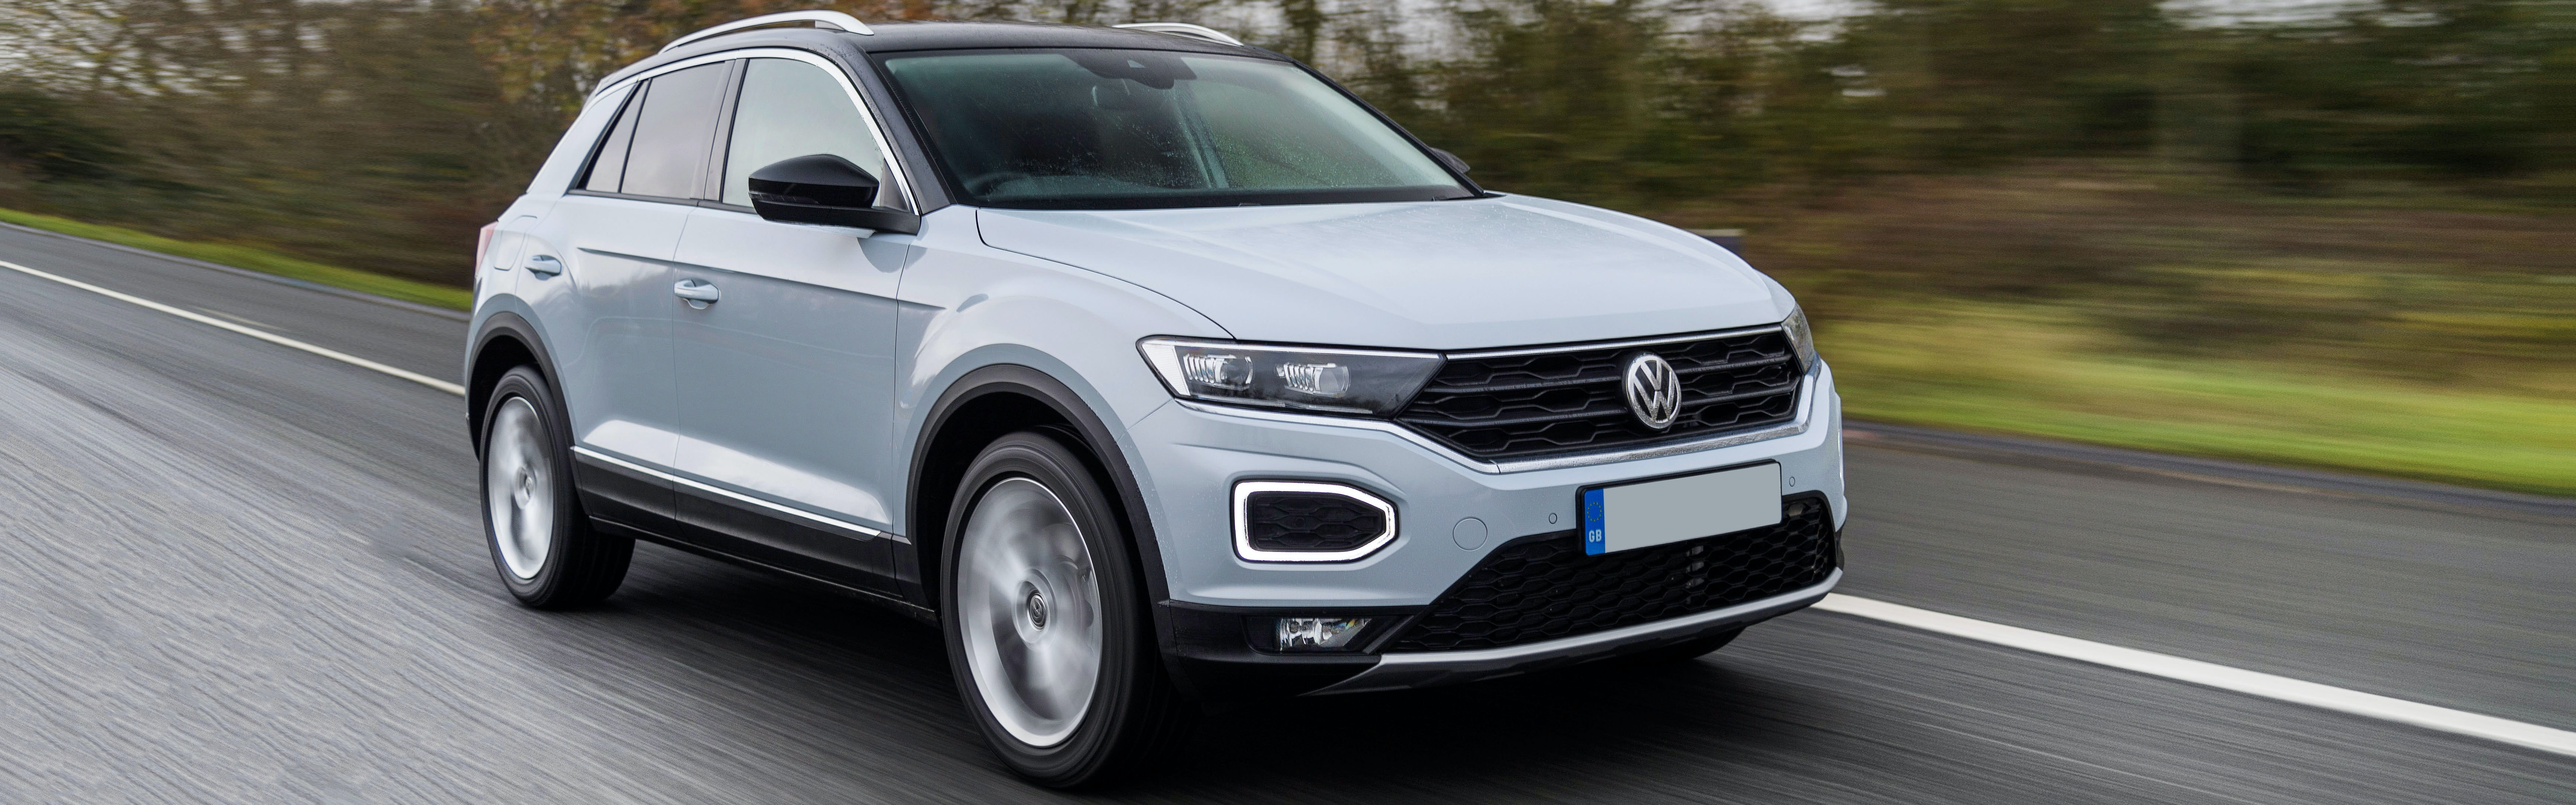 White Volkswagen T-Roc driving, viewed from the front